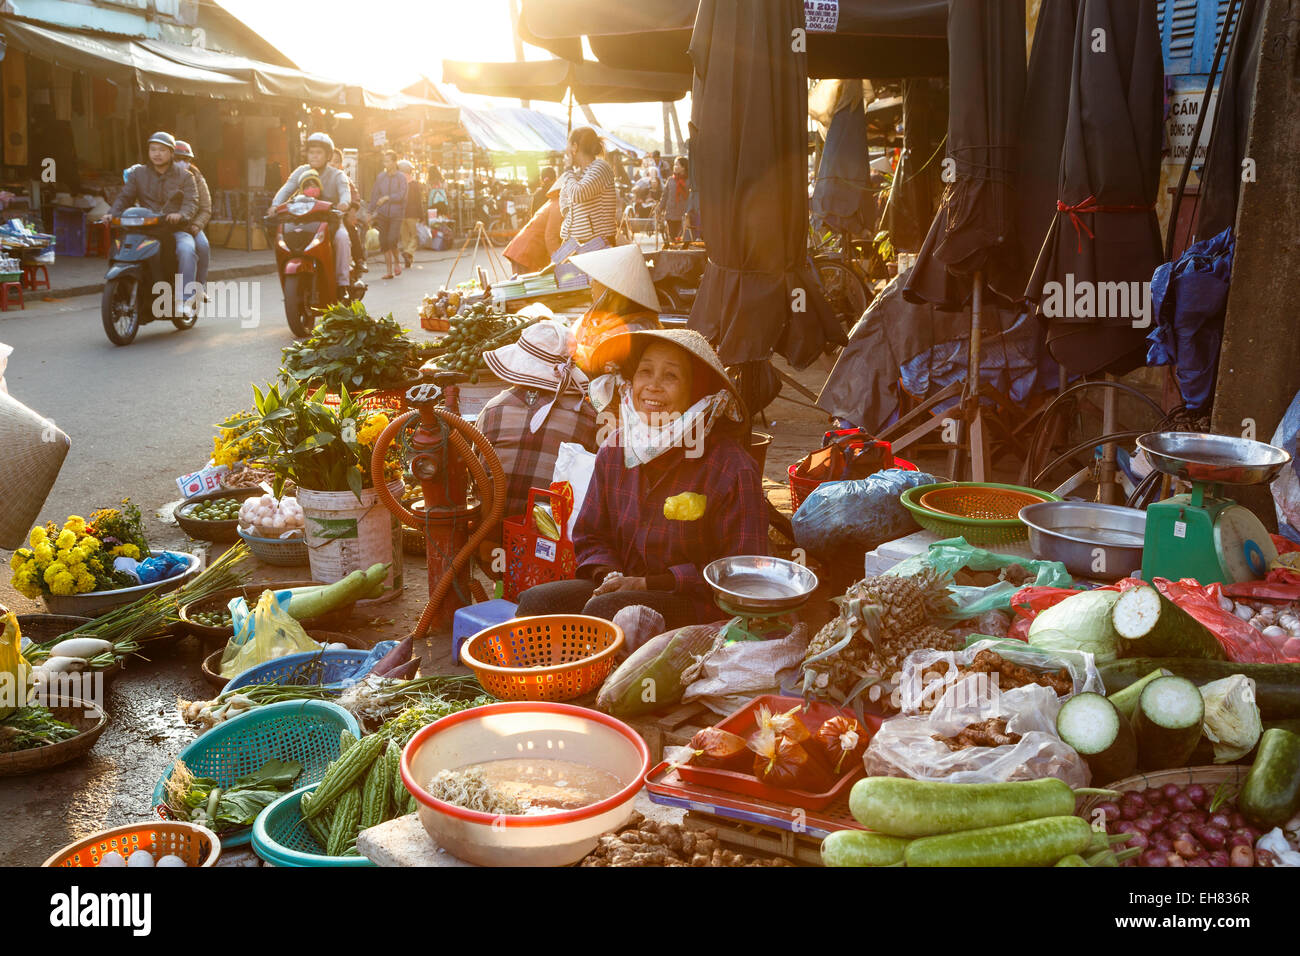 Fruit and vegetable vendors at the Central Market, Hoi An, Vietnam, Indochina, Southeast Asia, Asia - Stock Image